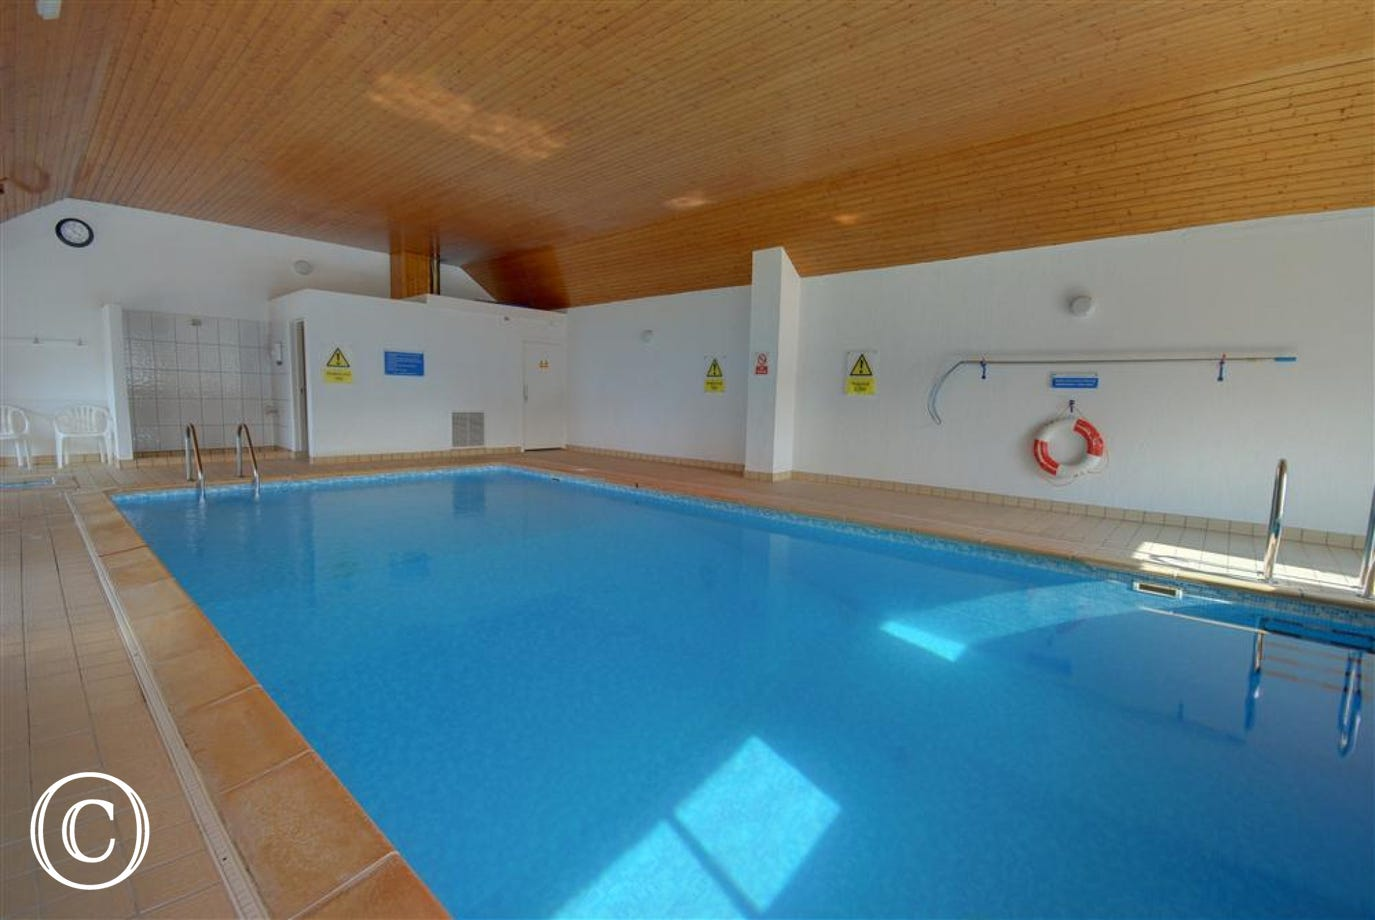 The apartment benefits from an indoor heated swimming pool and separate smaller child's pool